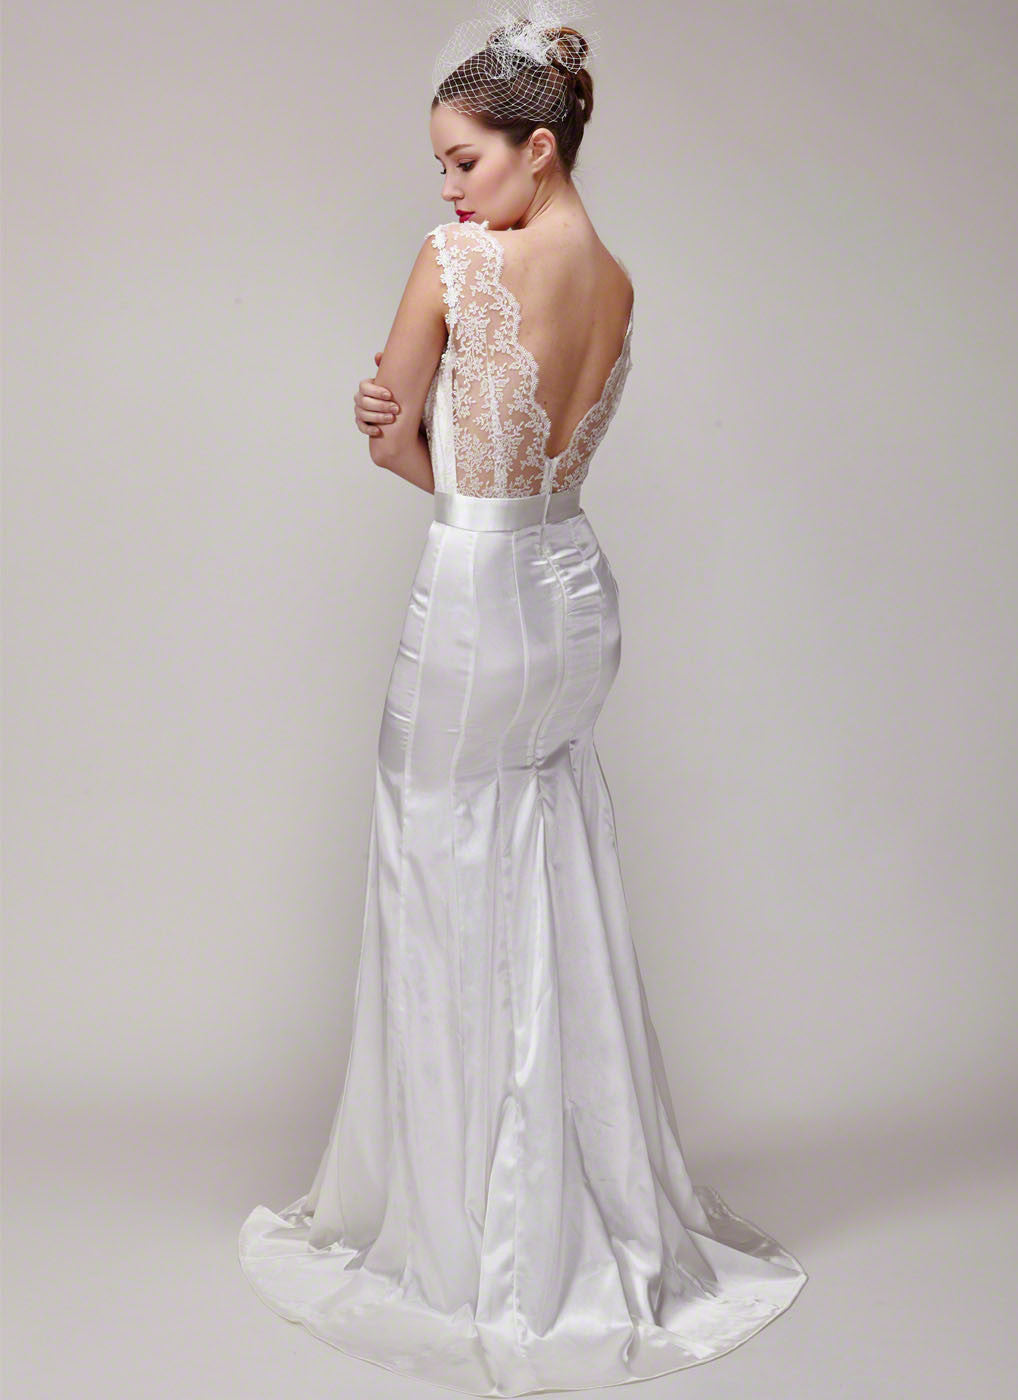 Backless Lace Satin Wedding Dress Open Back With Top V: White Lace Backless Wedding Dress At Reisefeber.org